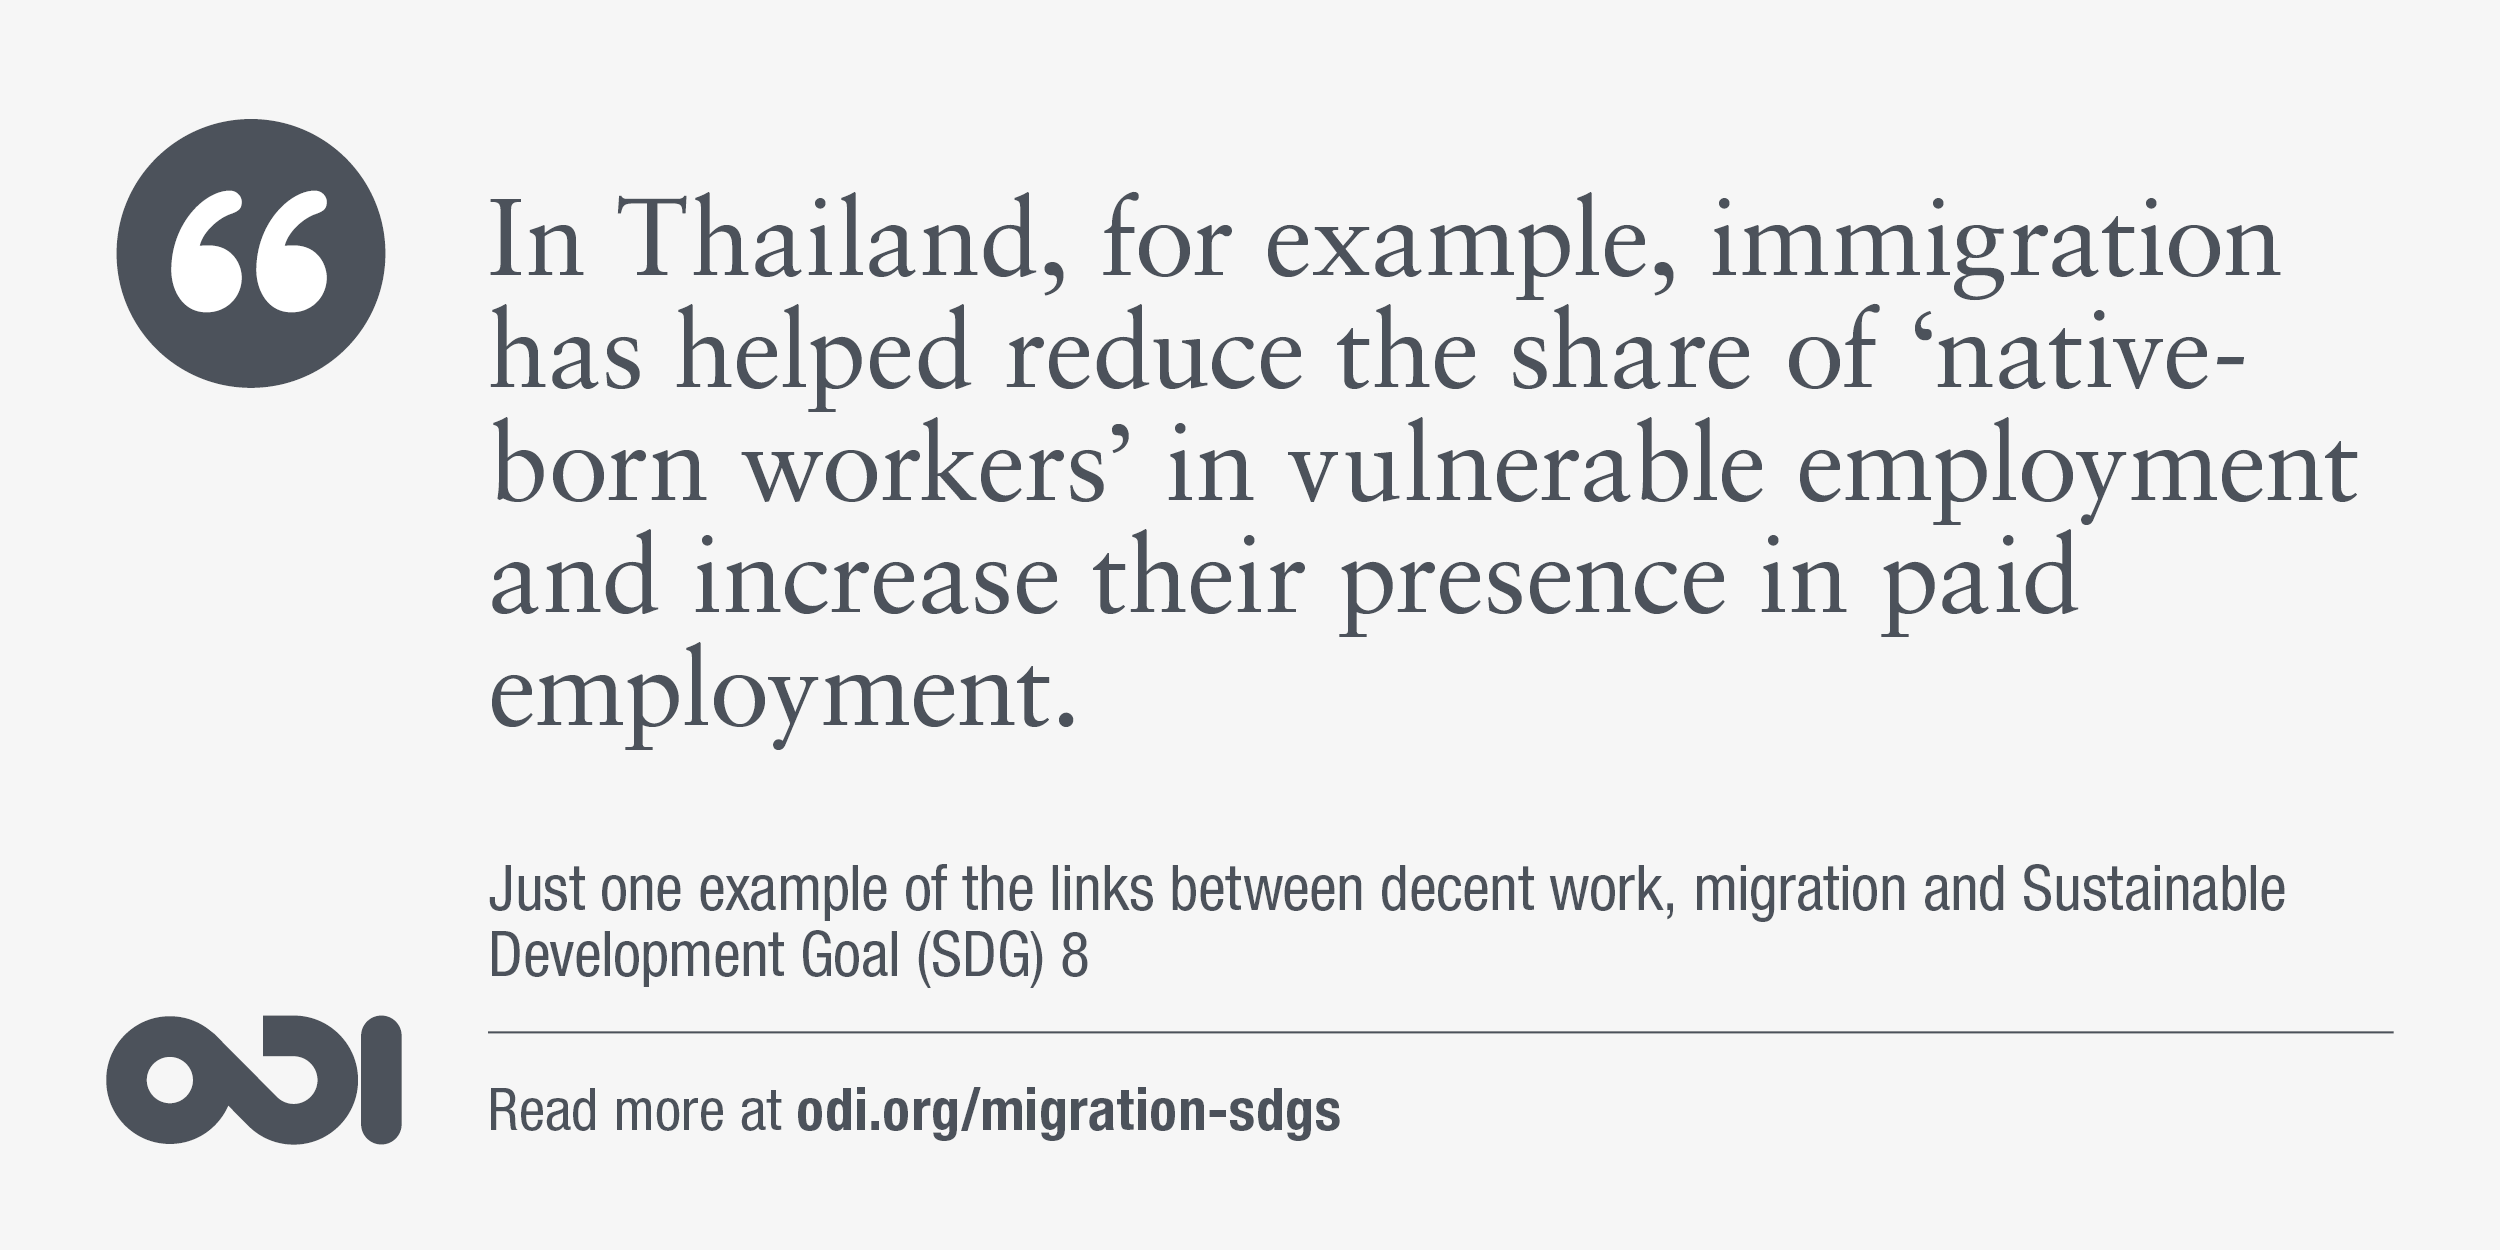 The links between decent work, migration and SDG 8.